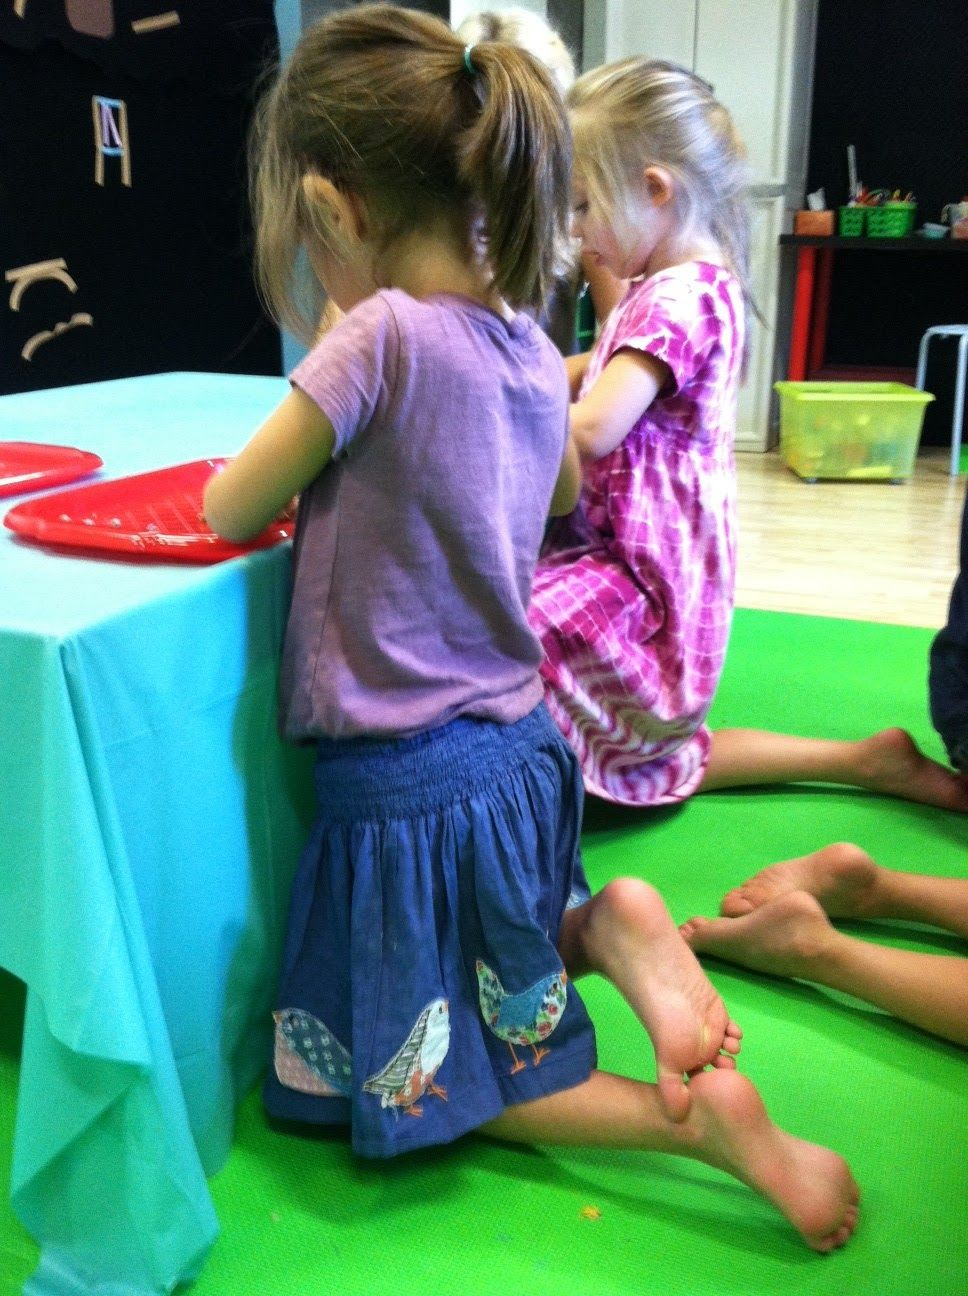 Developing Minds Through Occupational Therapy: Kneeling during table work